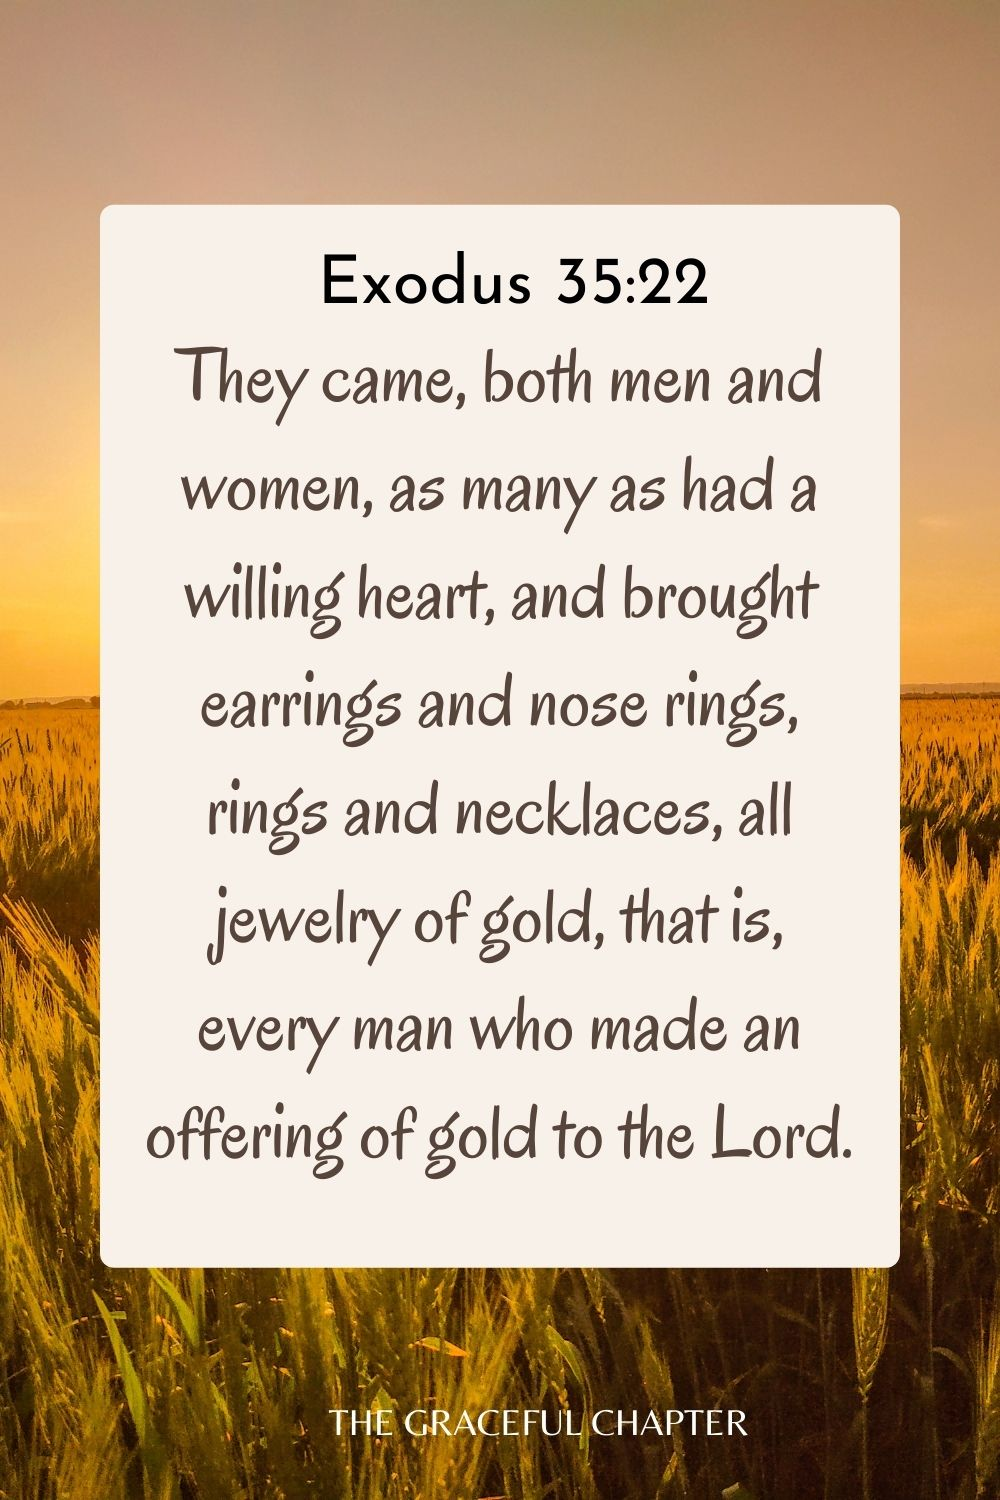 They came, both men and women, as many as had a willing heart, and brought earrings and nose rings, rings and necklaces, all jewelry of gold, that is, every man who made an offering of gold to the Lord. Exodus 35:22